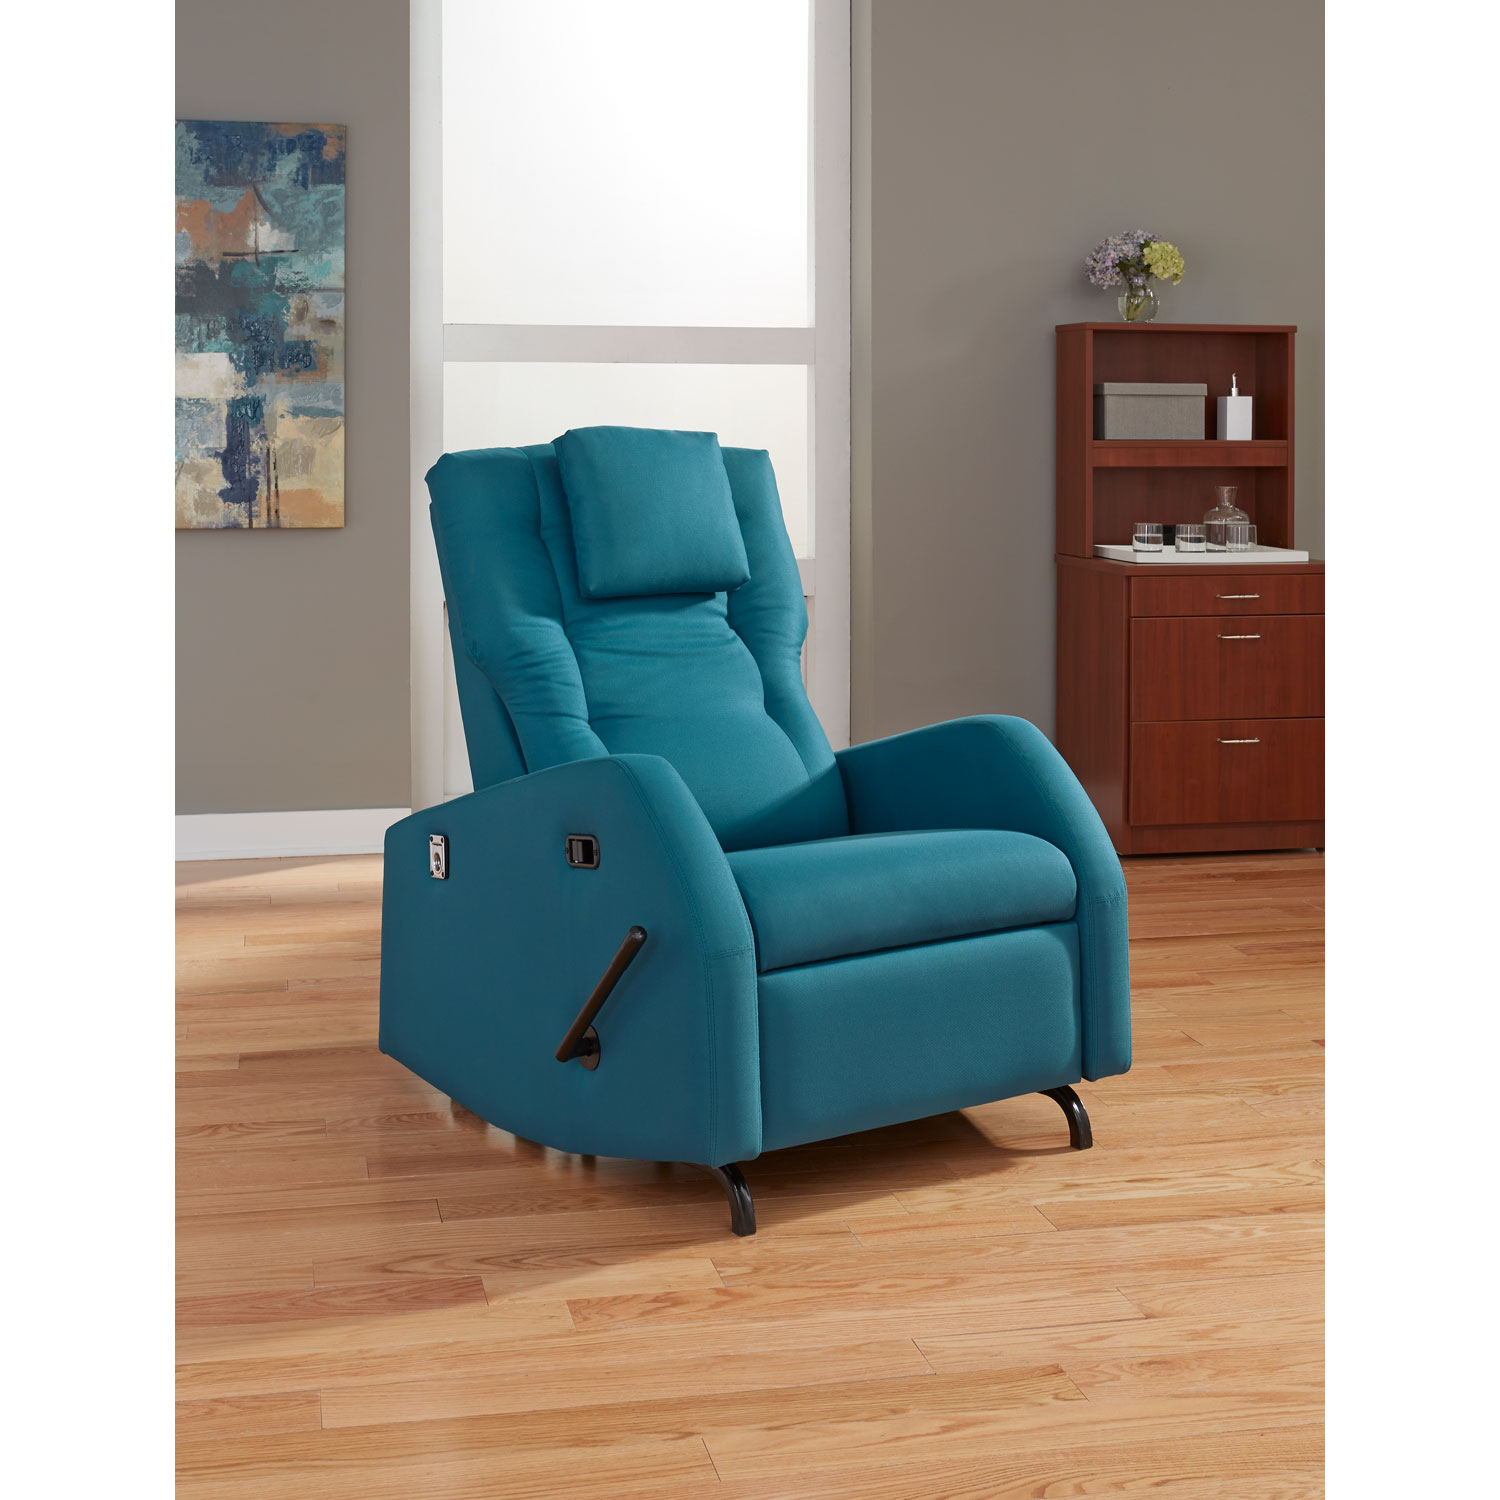 Hannah healthcare recliners from HPFi High Point Furniture